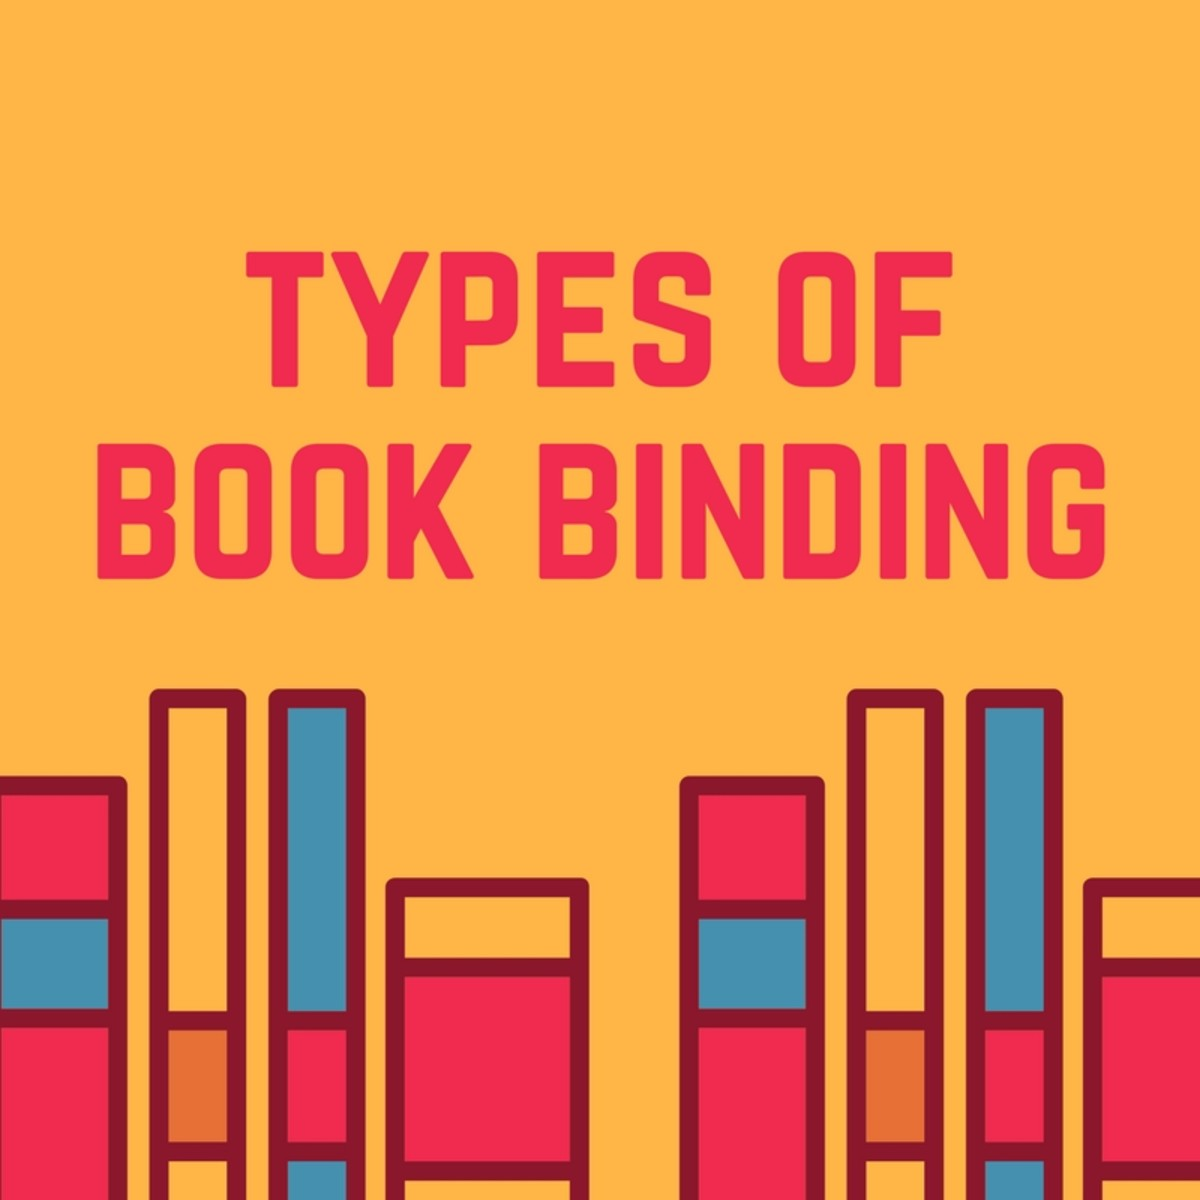 Types of book binding owlcation in solutioingenieria Images